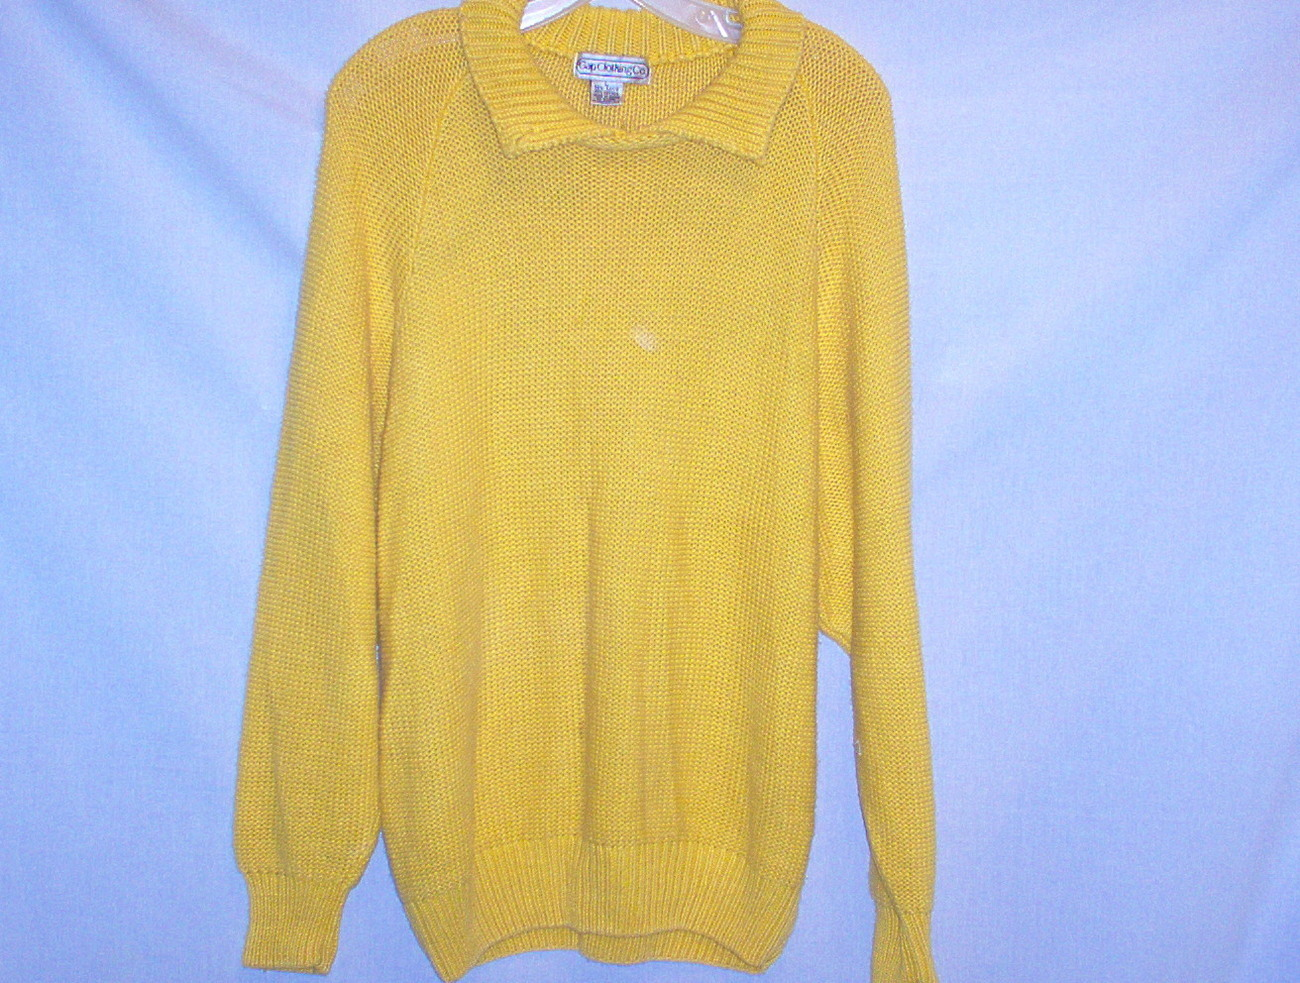 Gap Women  Vintage Bright Yellow Slip on Sweater   Size